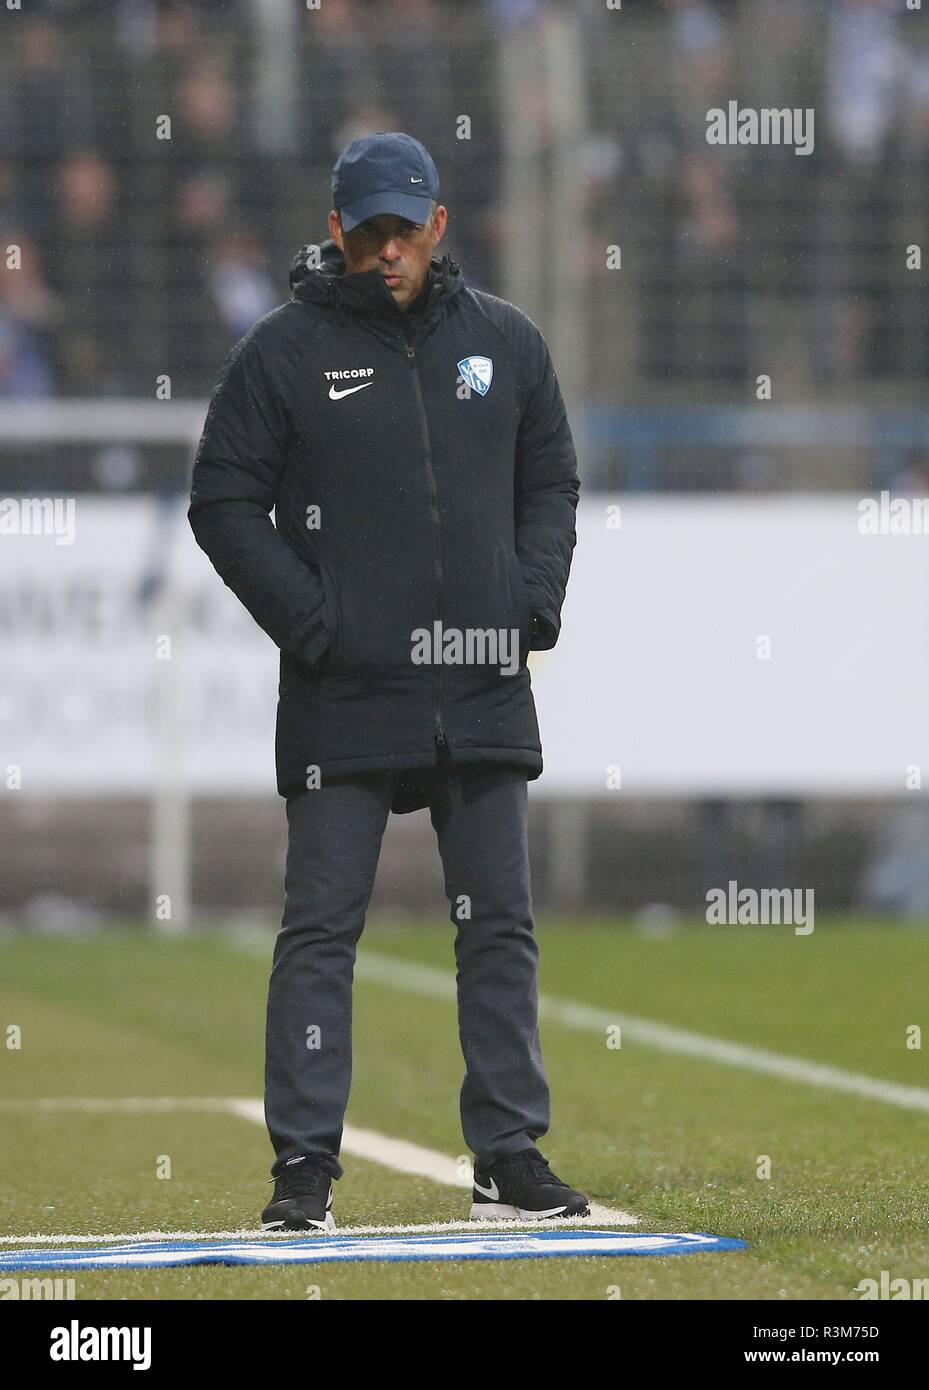 firo: 24.11.2018, football, 2.Bundesliga, season 2018/2019, VfL Bochum - Erzgebirge Aue coach Robin DUTT, Bochum | usage worldwide - Stock Image